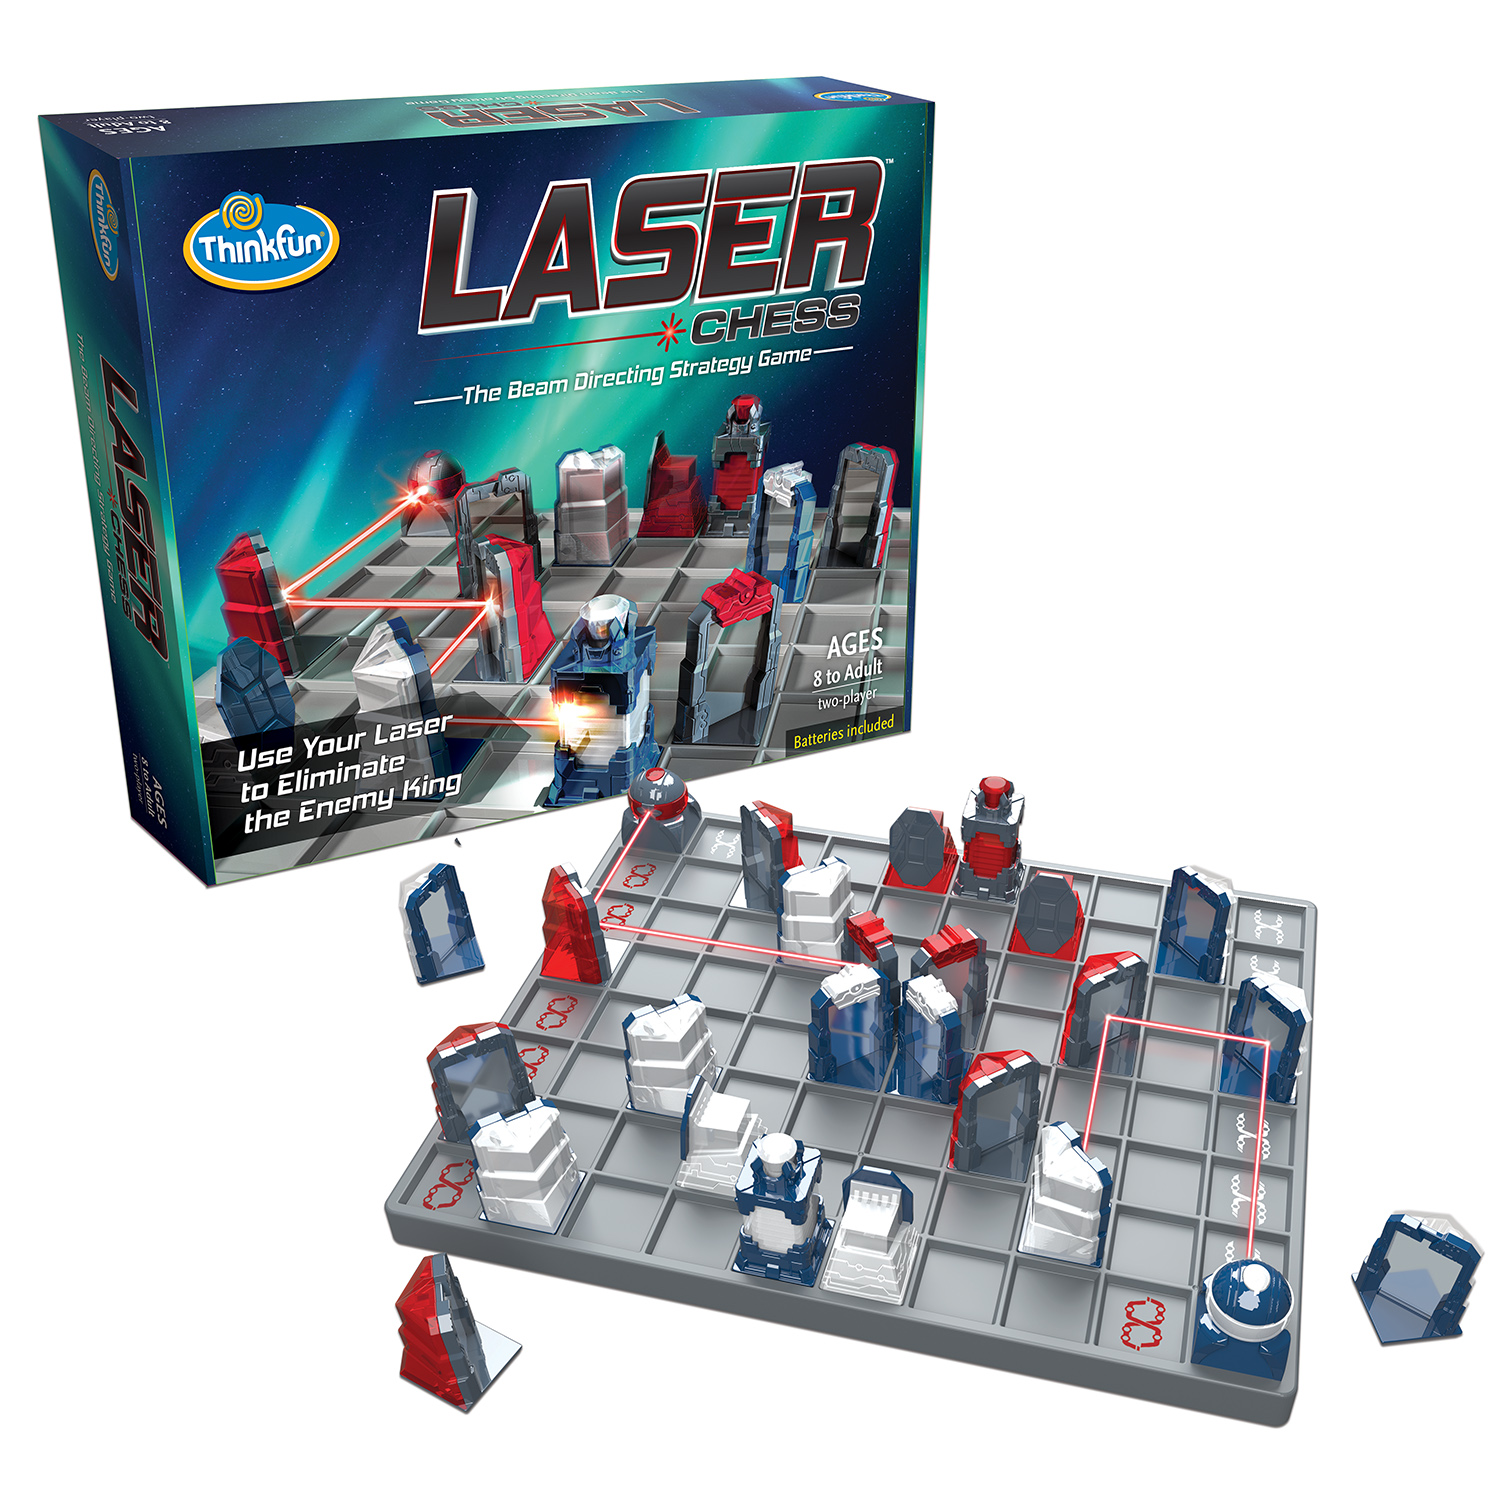 Laser Chess: The Beam Directing Strategy Game by ThinkFun